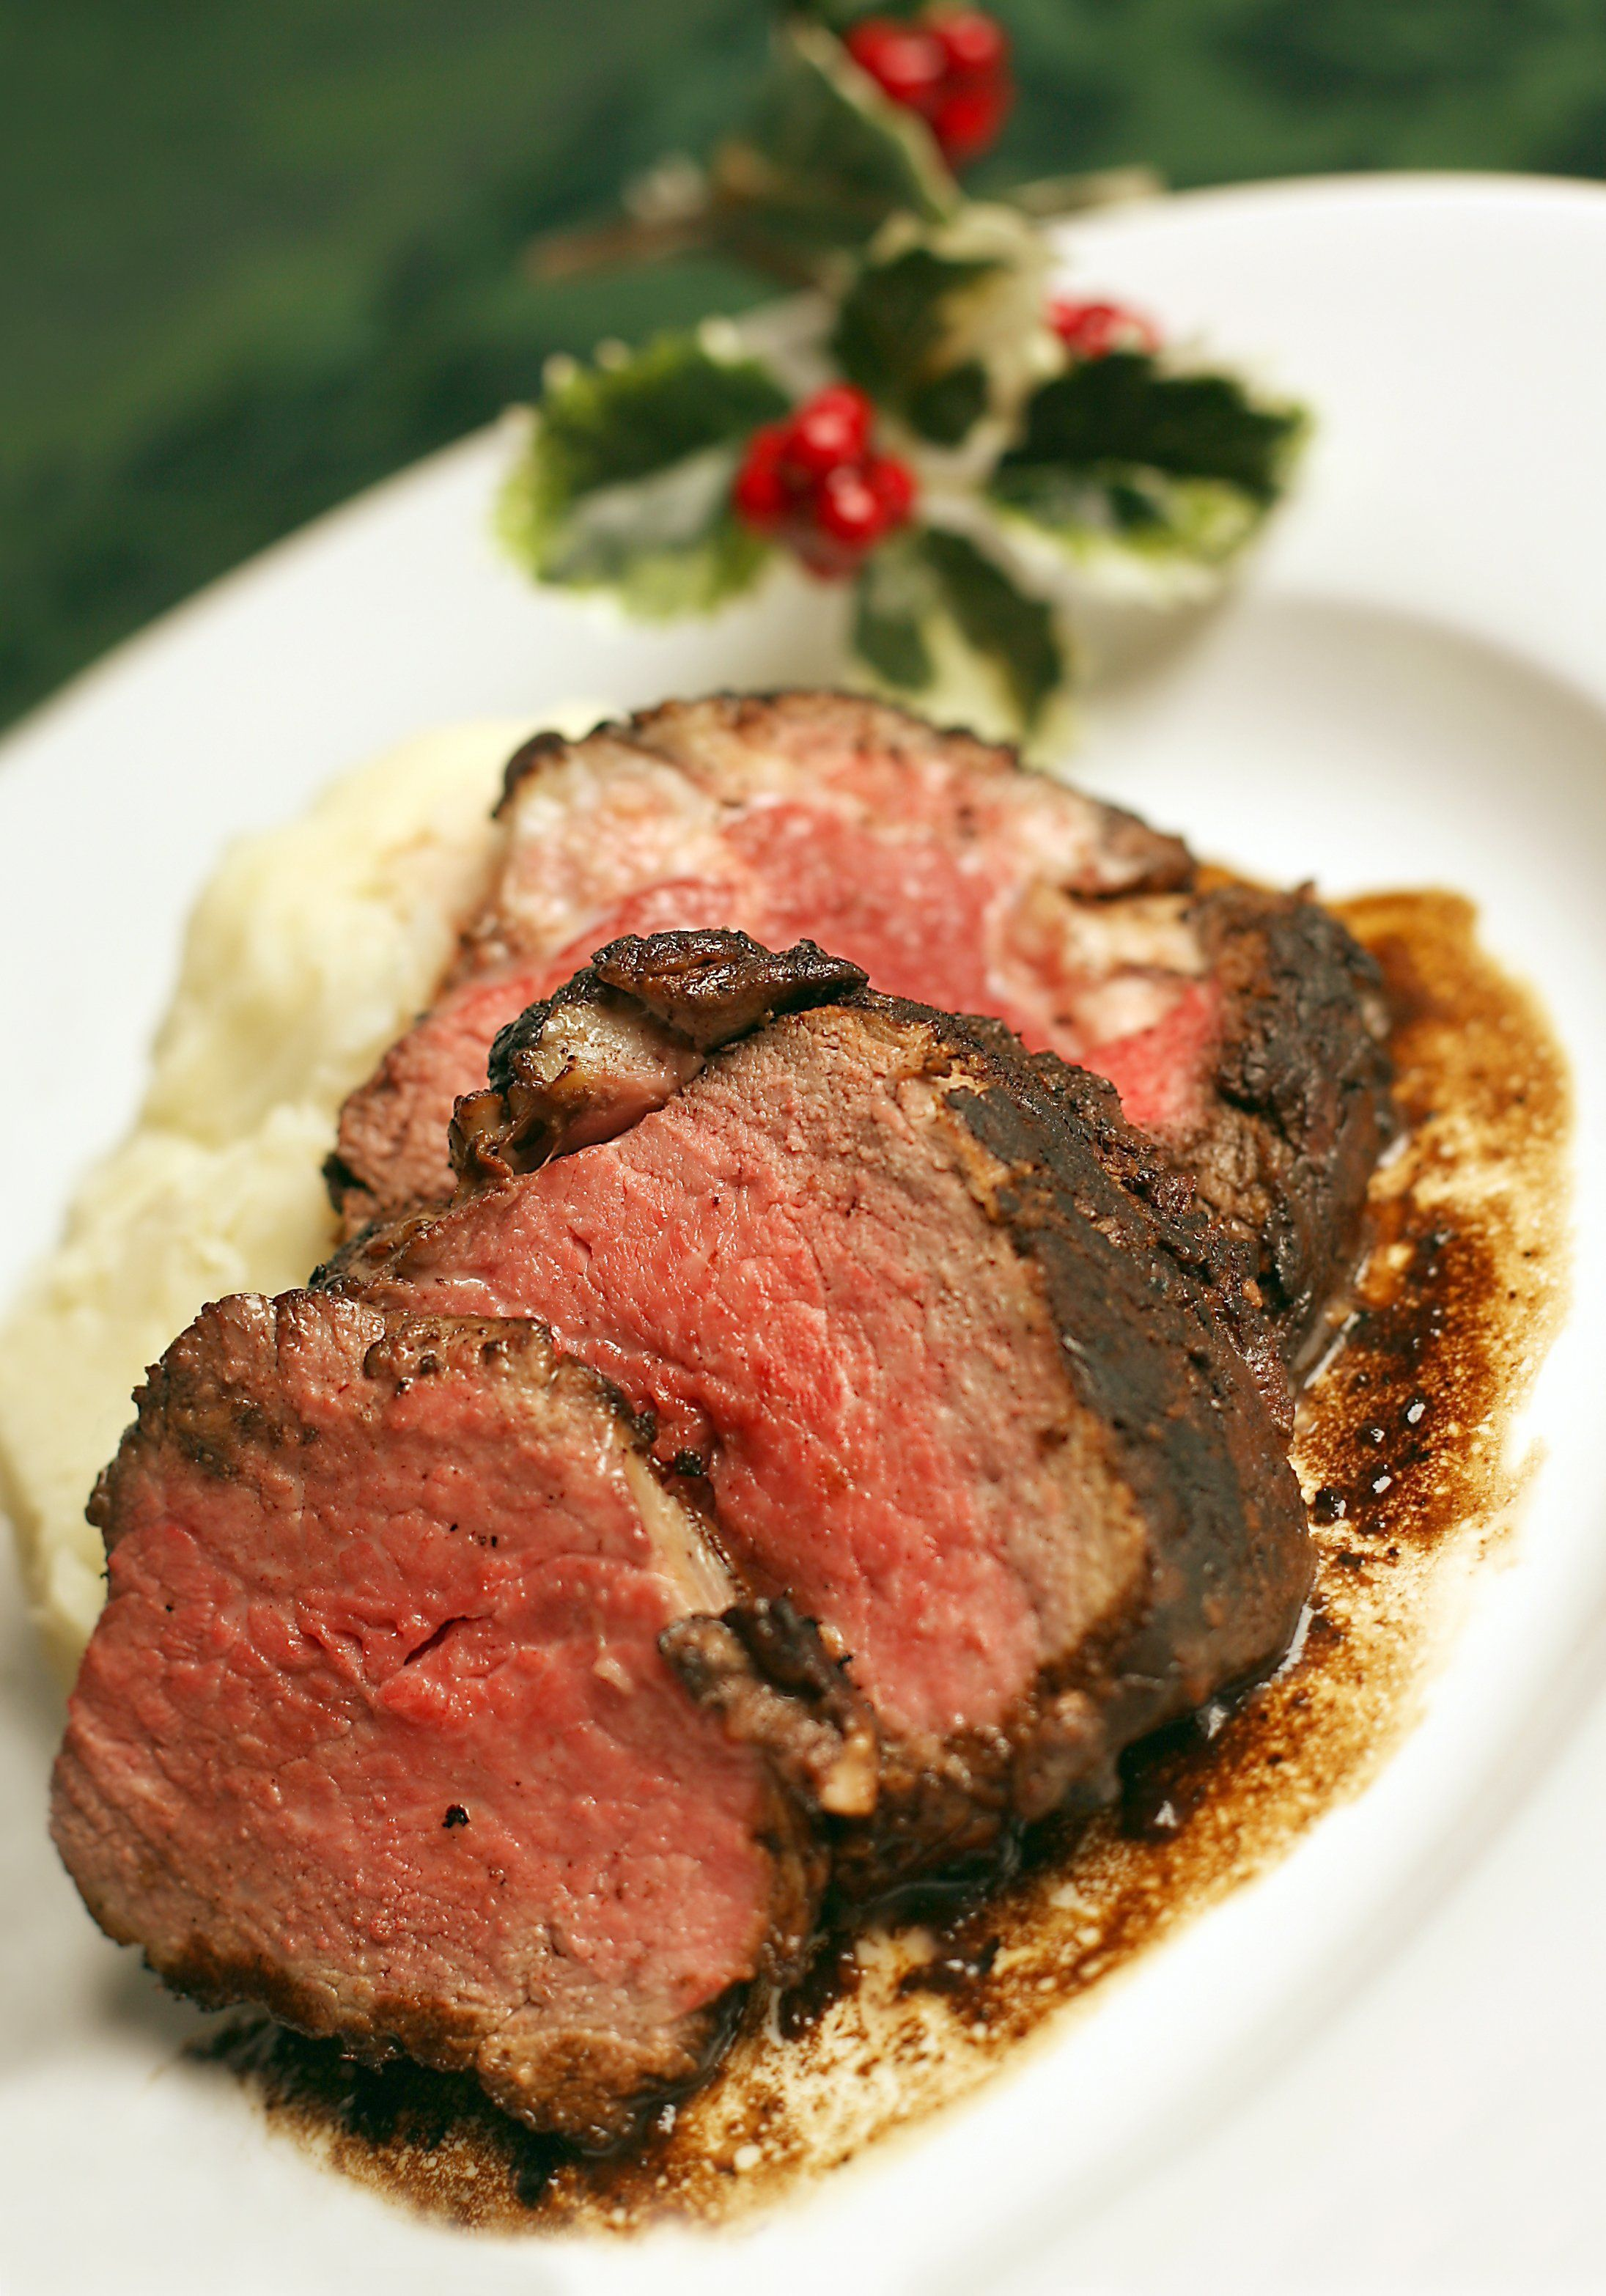 Beef tenderloin with mashed potatoes.